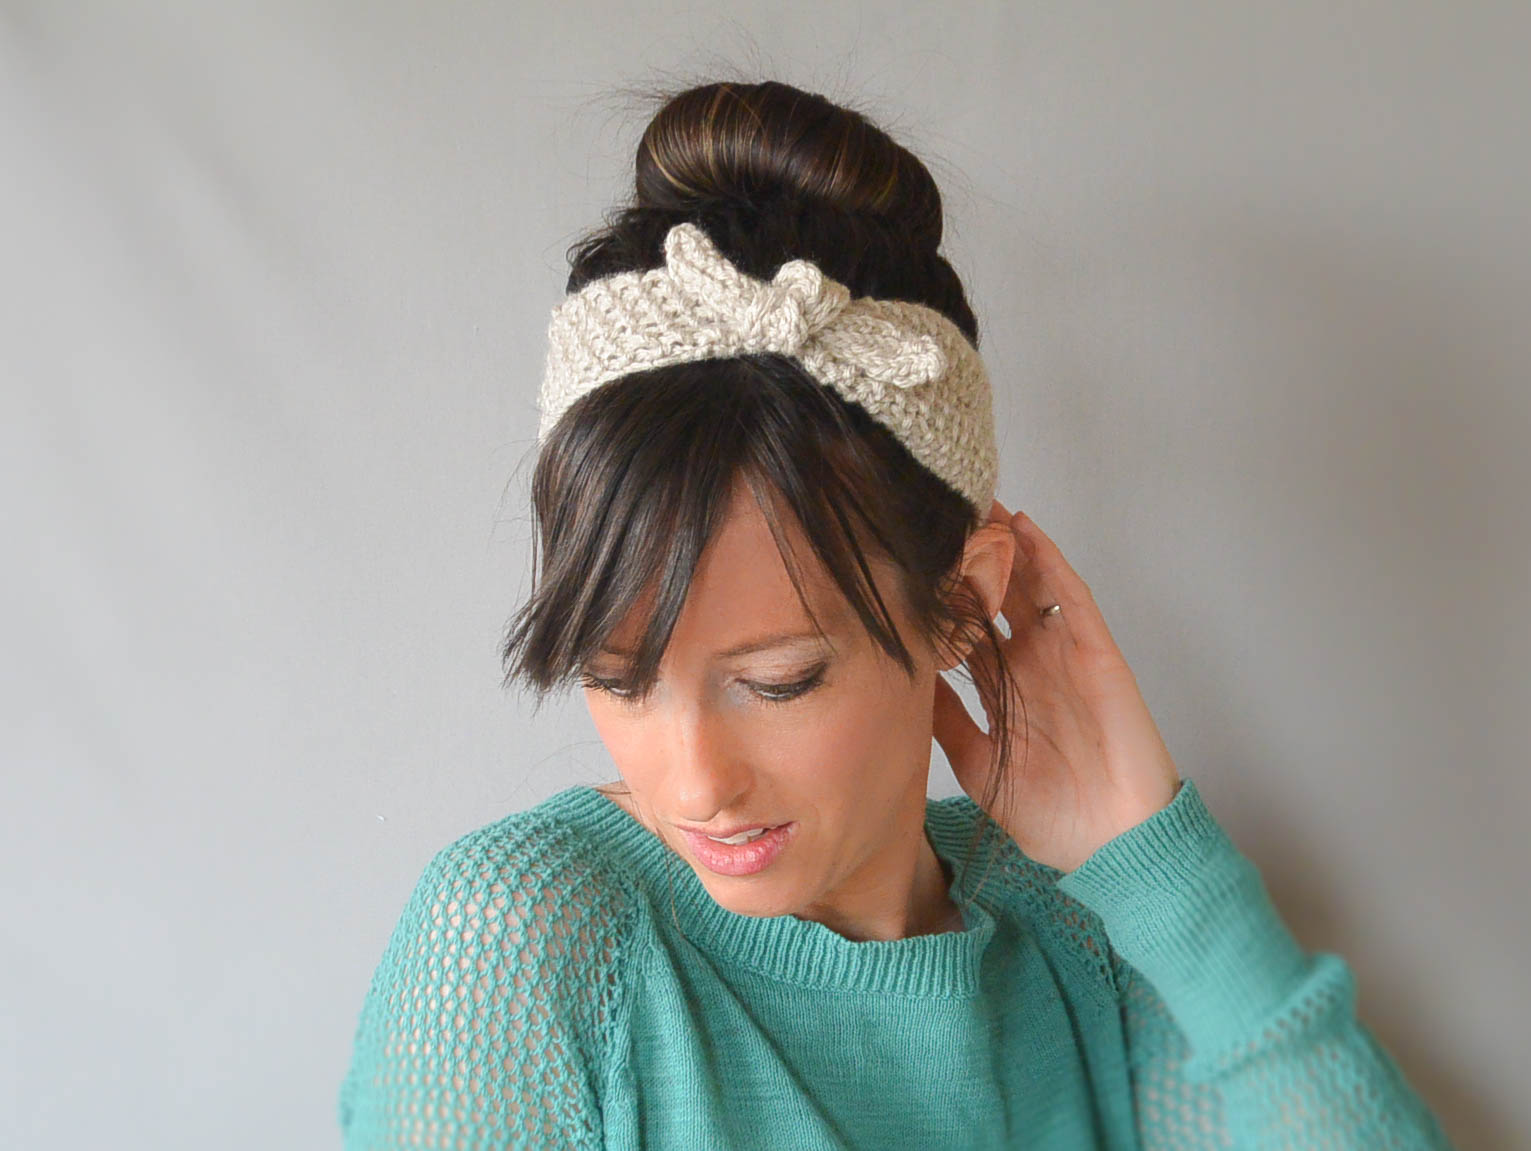 Vintage Knit Tie Headband Pattern – Mama In A Stitch fc2195845188